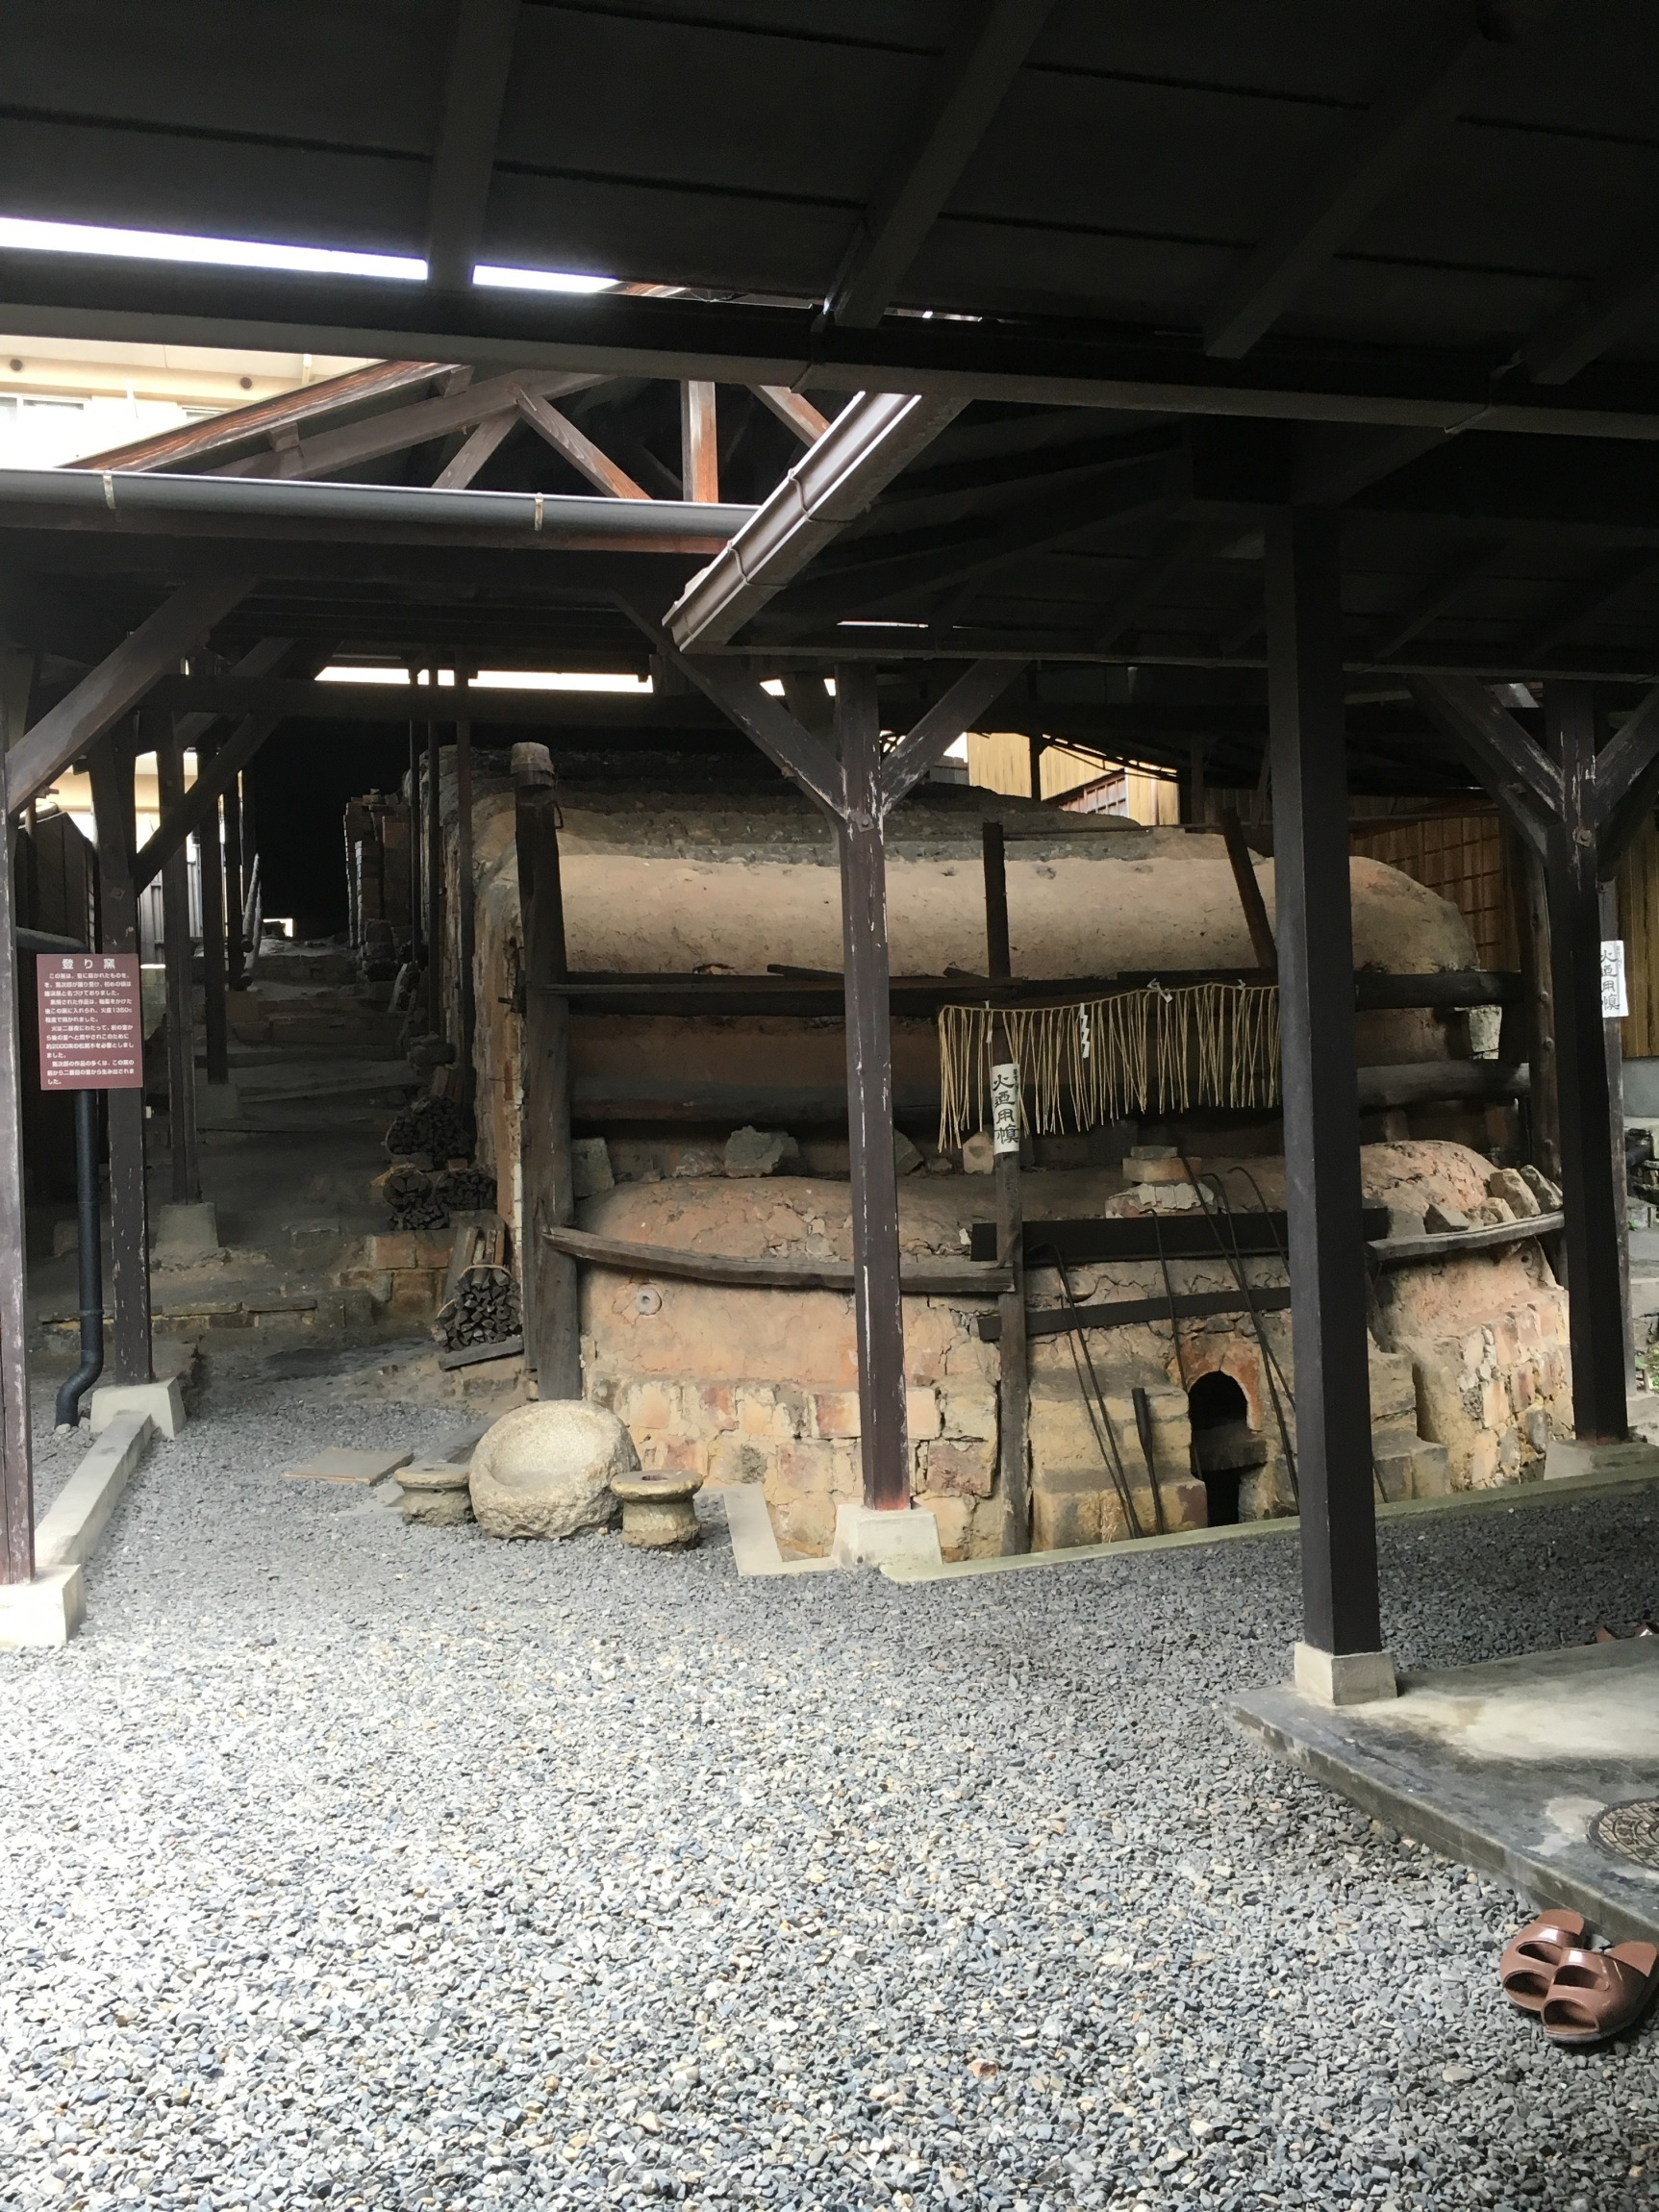 Also seen at the Kawai Kanjiro Museum was this multi-chambered Noborigama kiln, last fired up in 1971. The piles of wood used for the kiln can be seen along the side. This would have only been a small proportion of the amount used to get the kiln up to 1200 degrees celsius. I would love to see one in action one day.